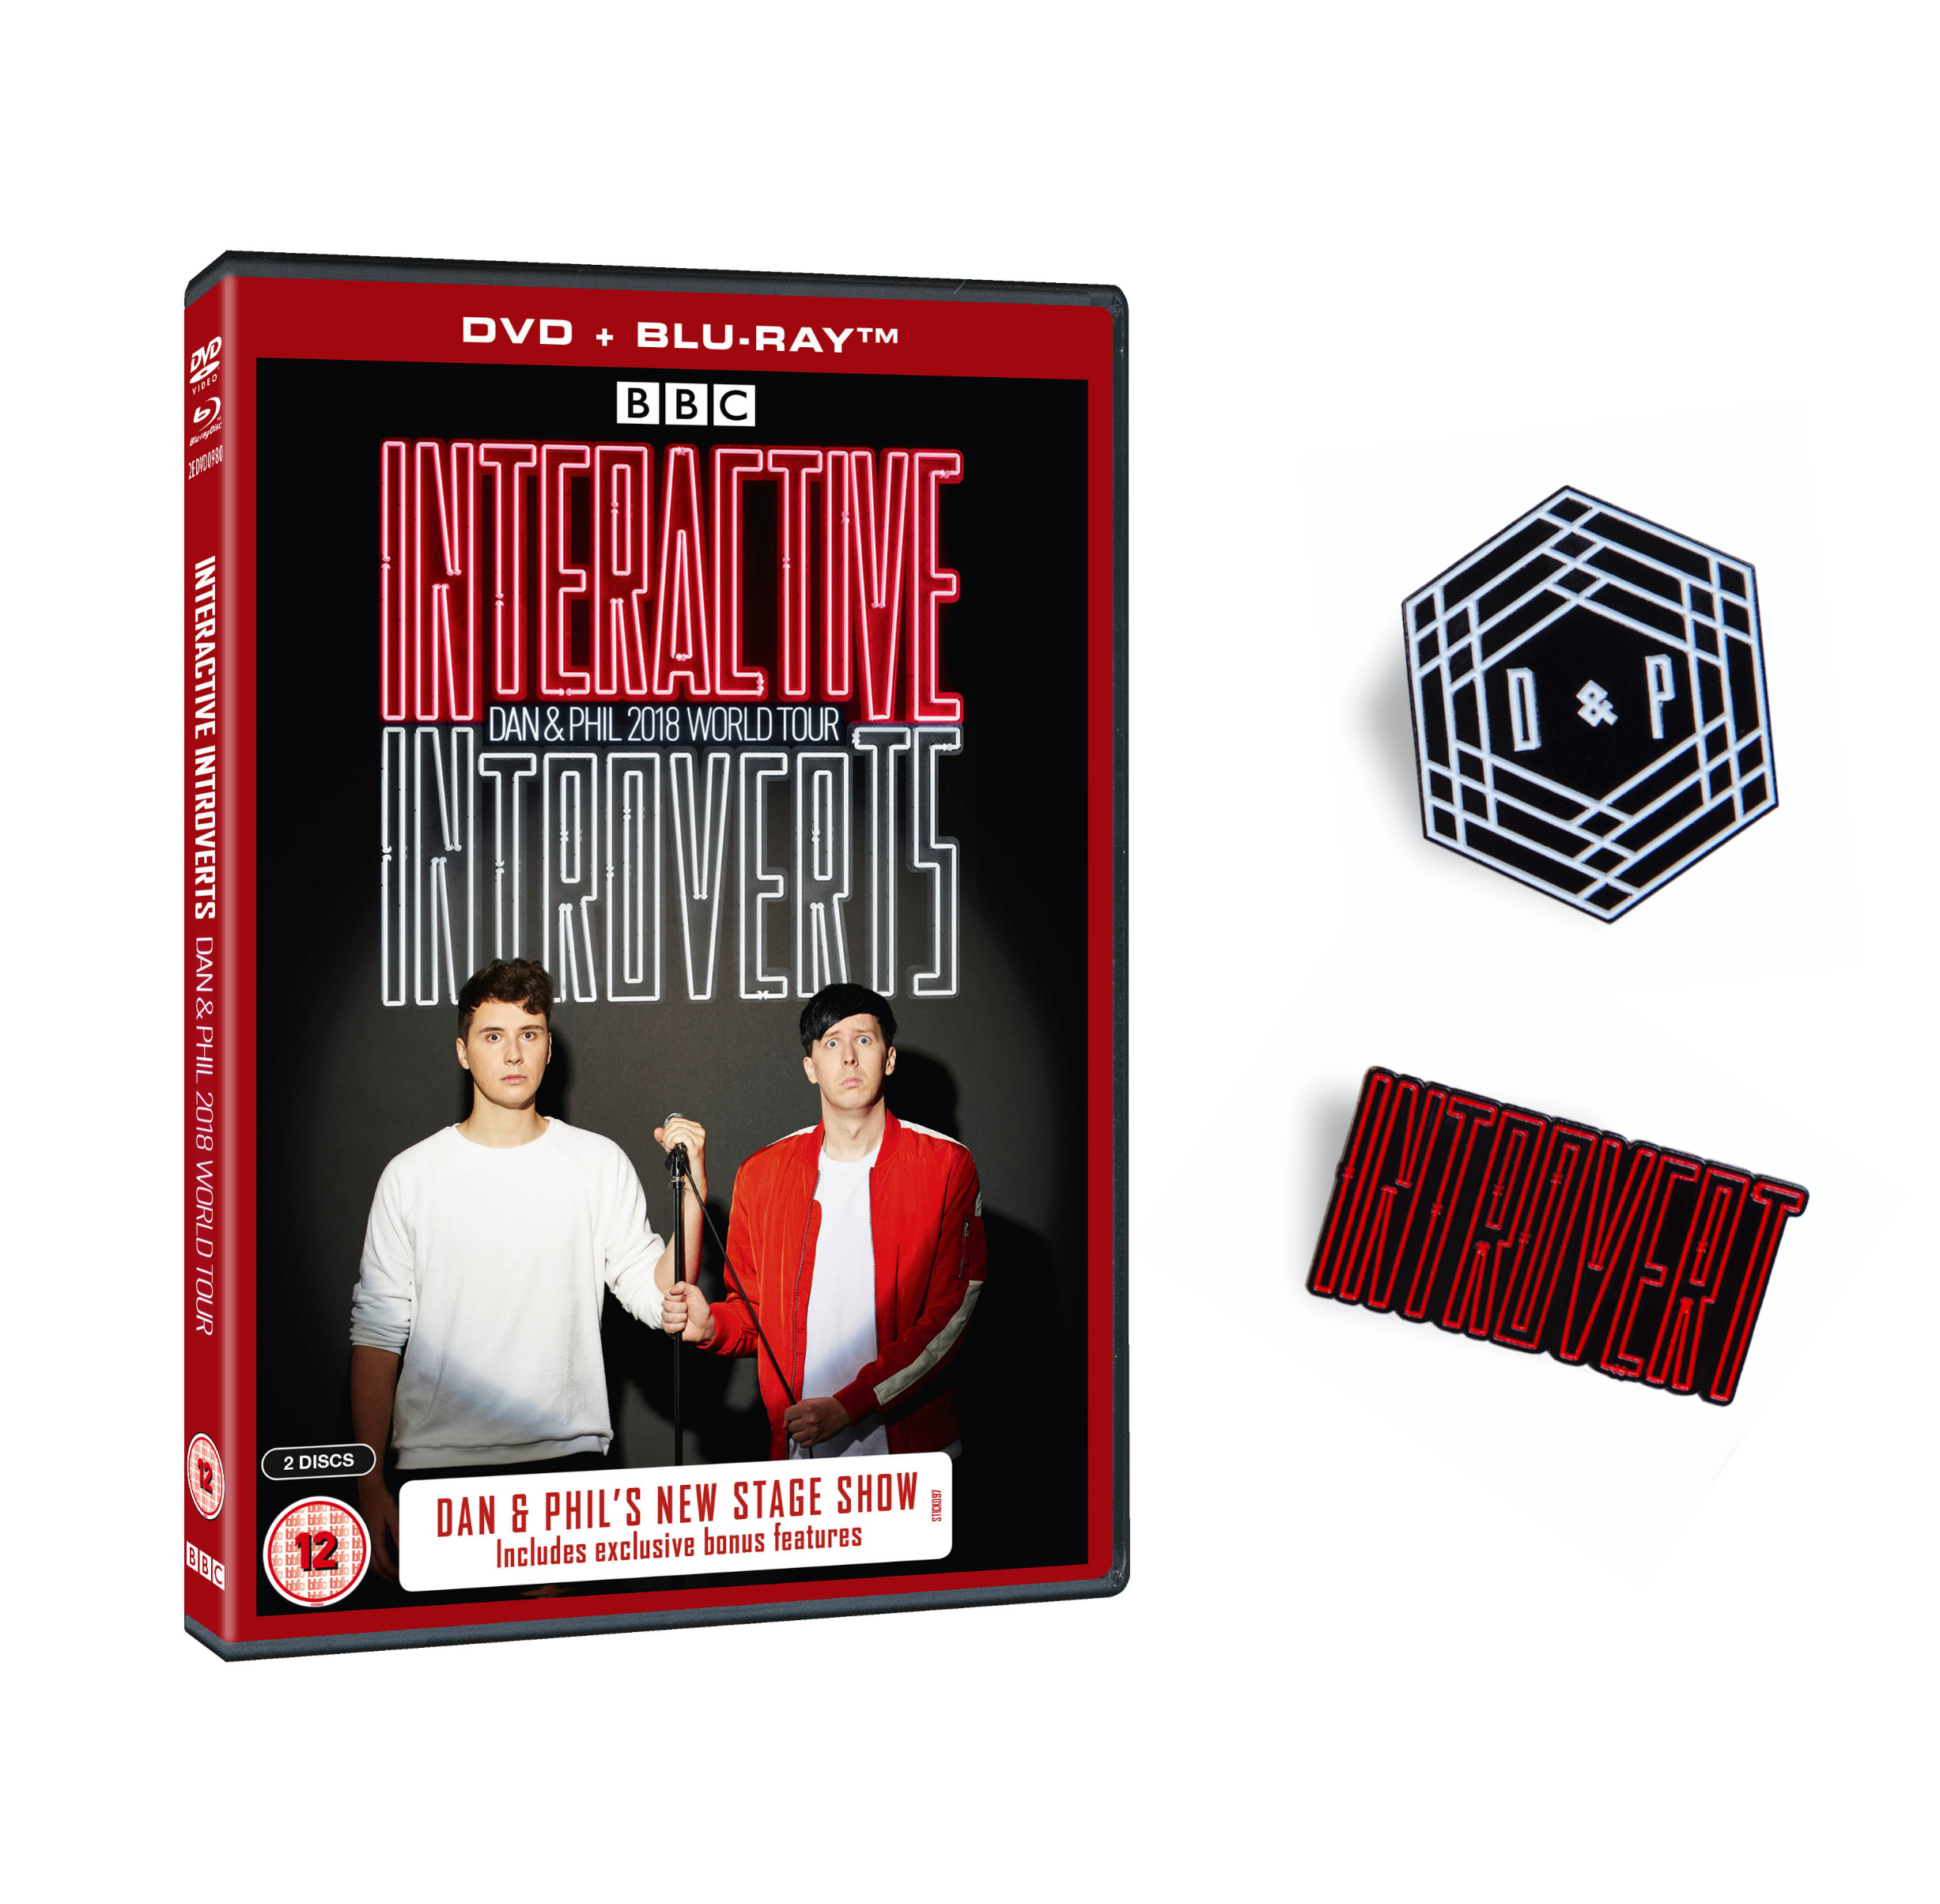 Interactive Introverts DVD + Blu-Ray (with Pin Set)